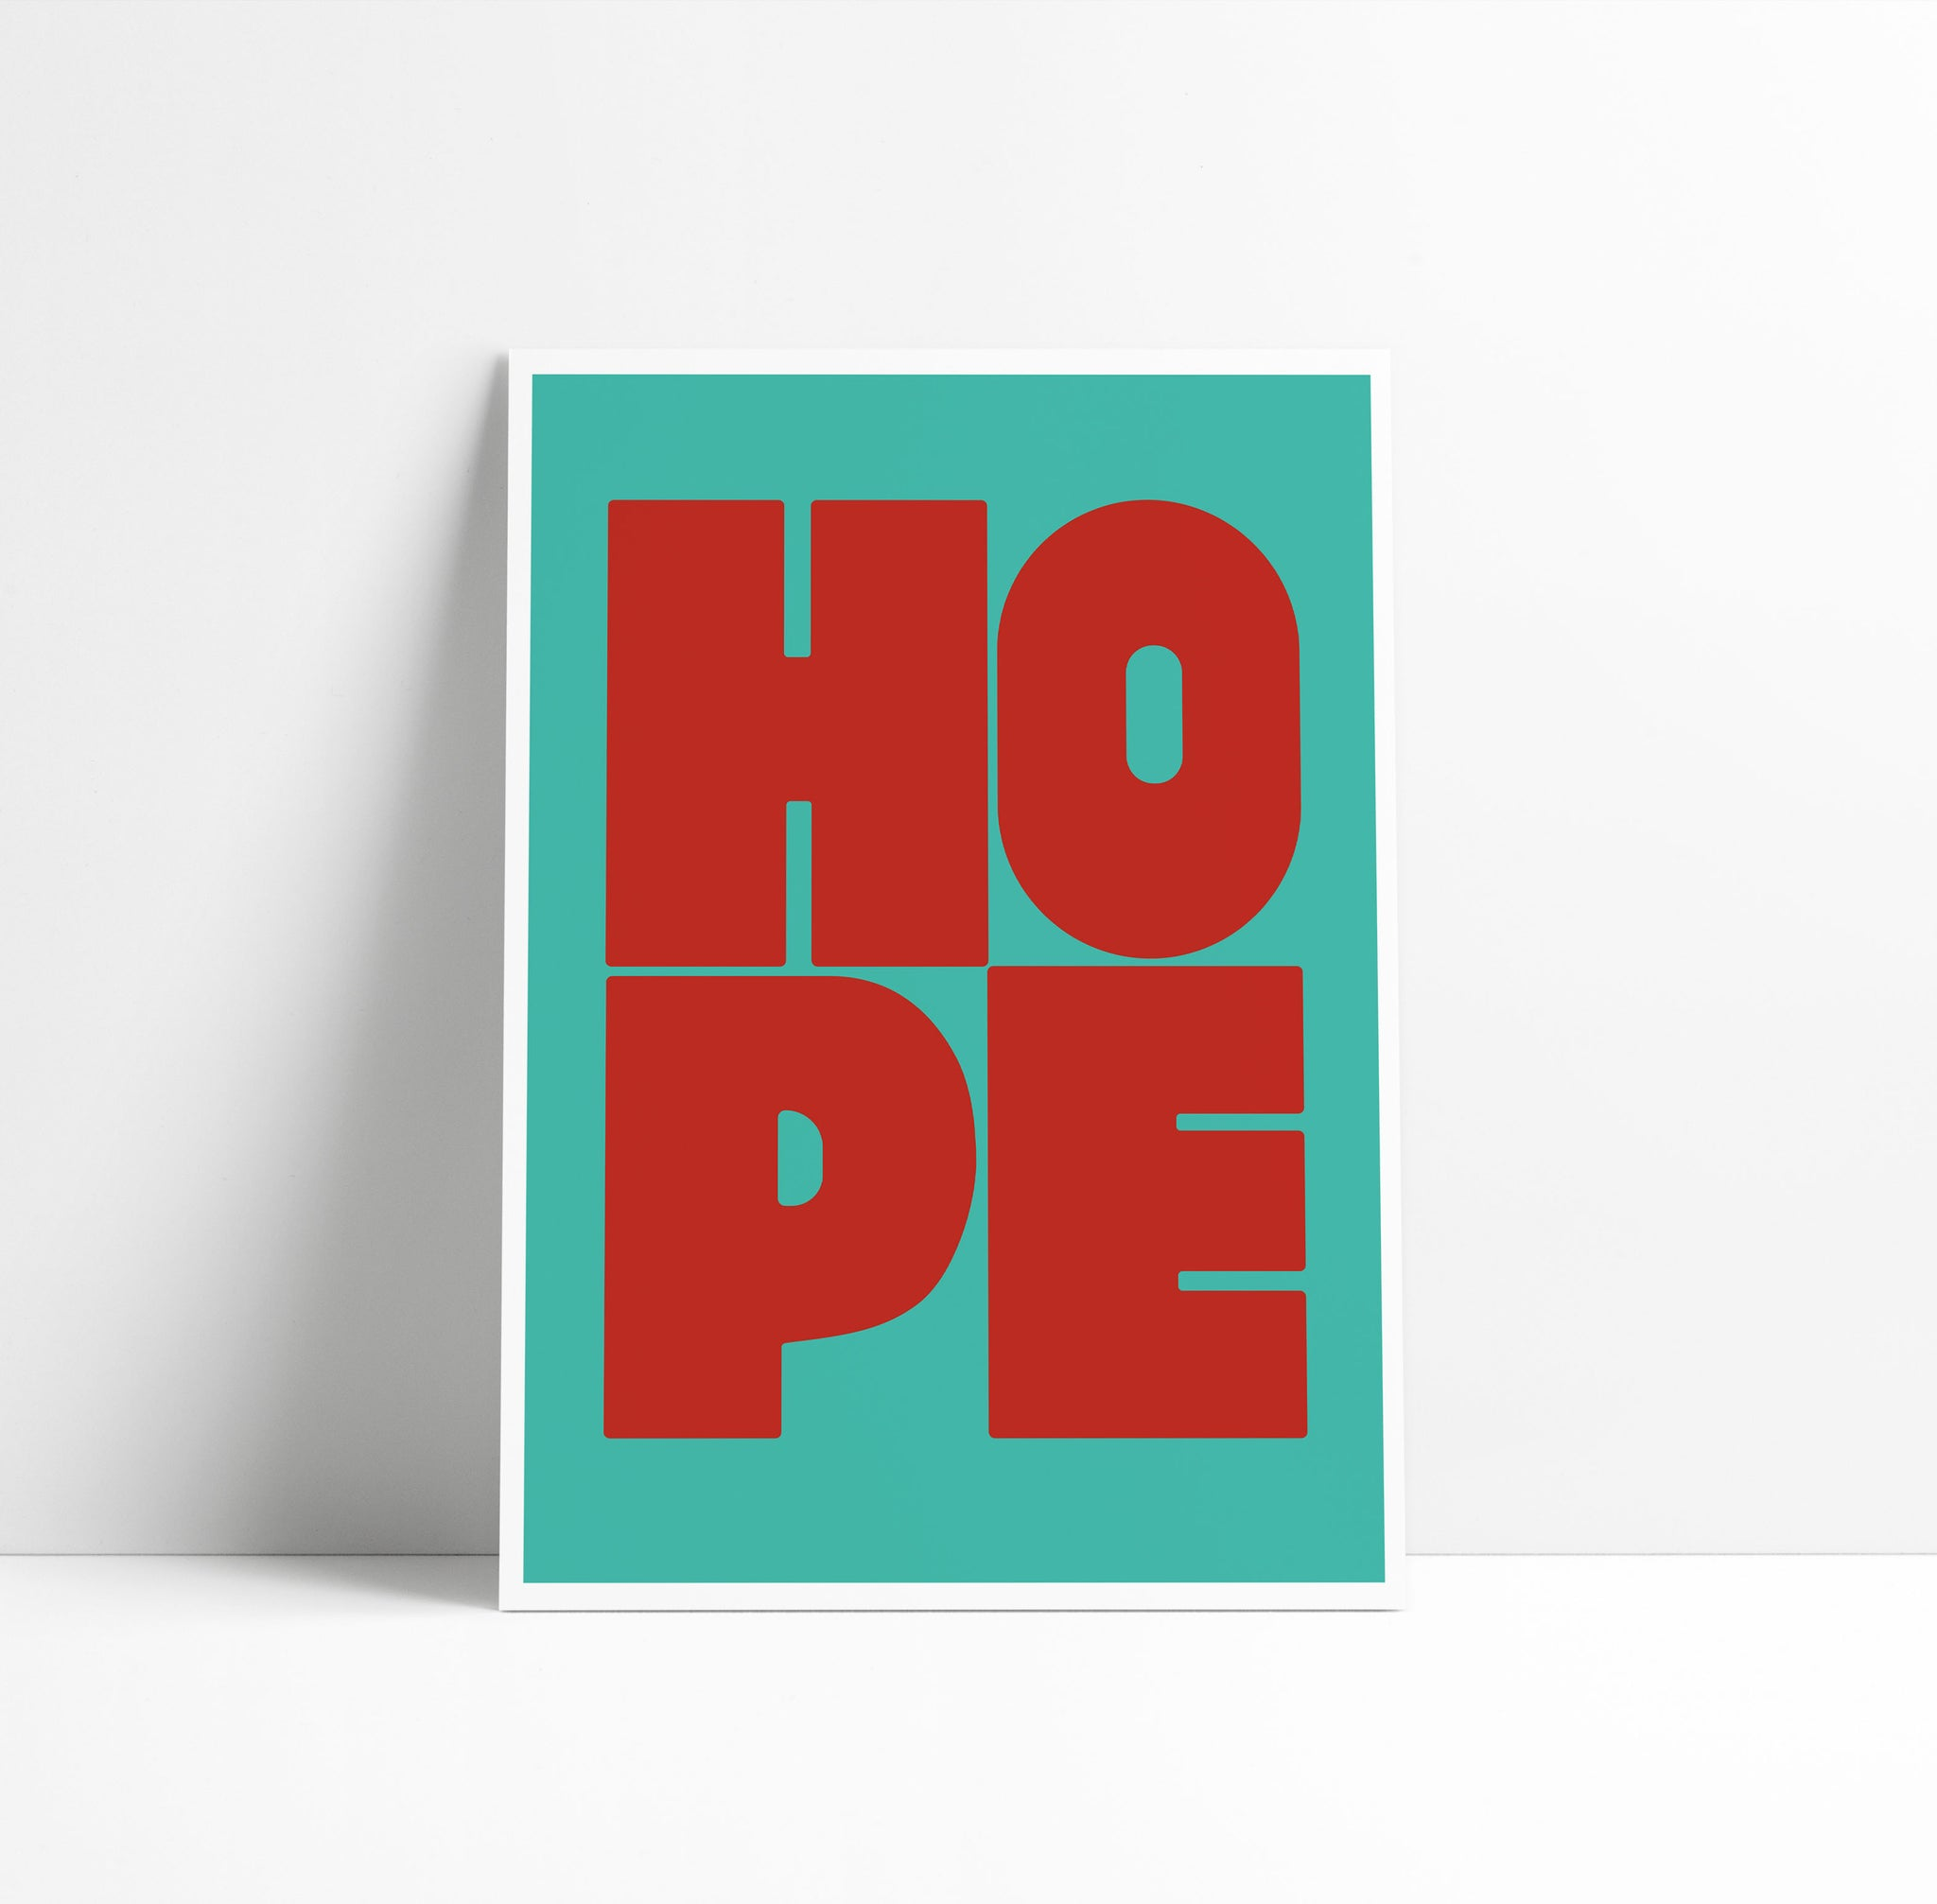 HOPE BY THE DAILY PENNANTS